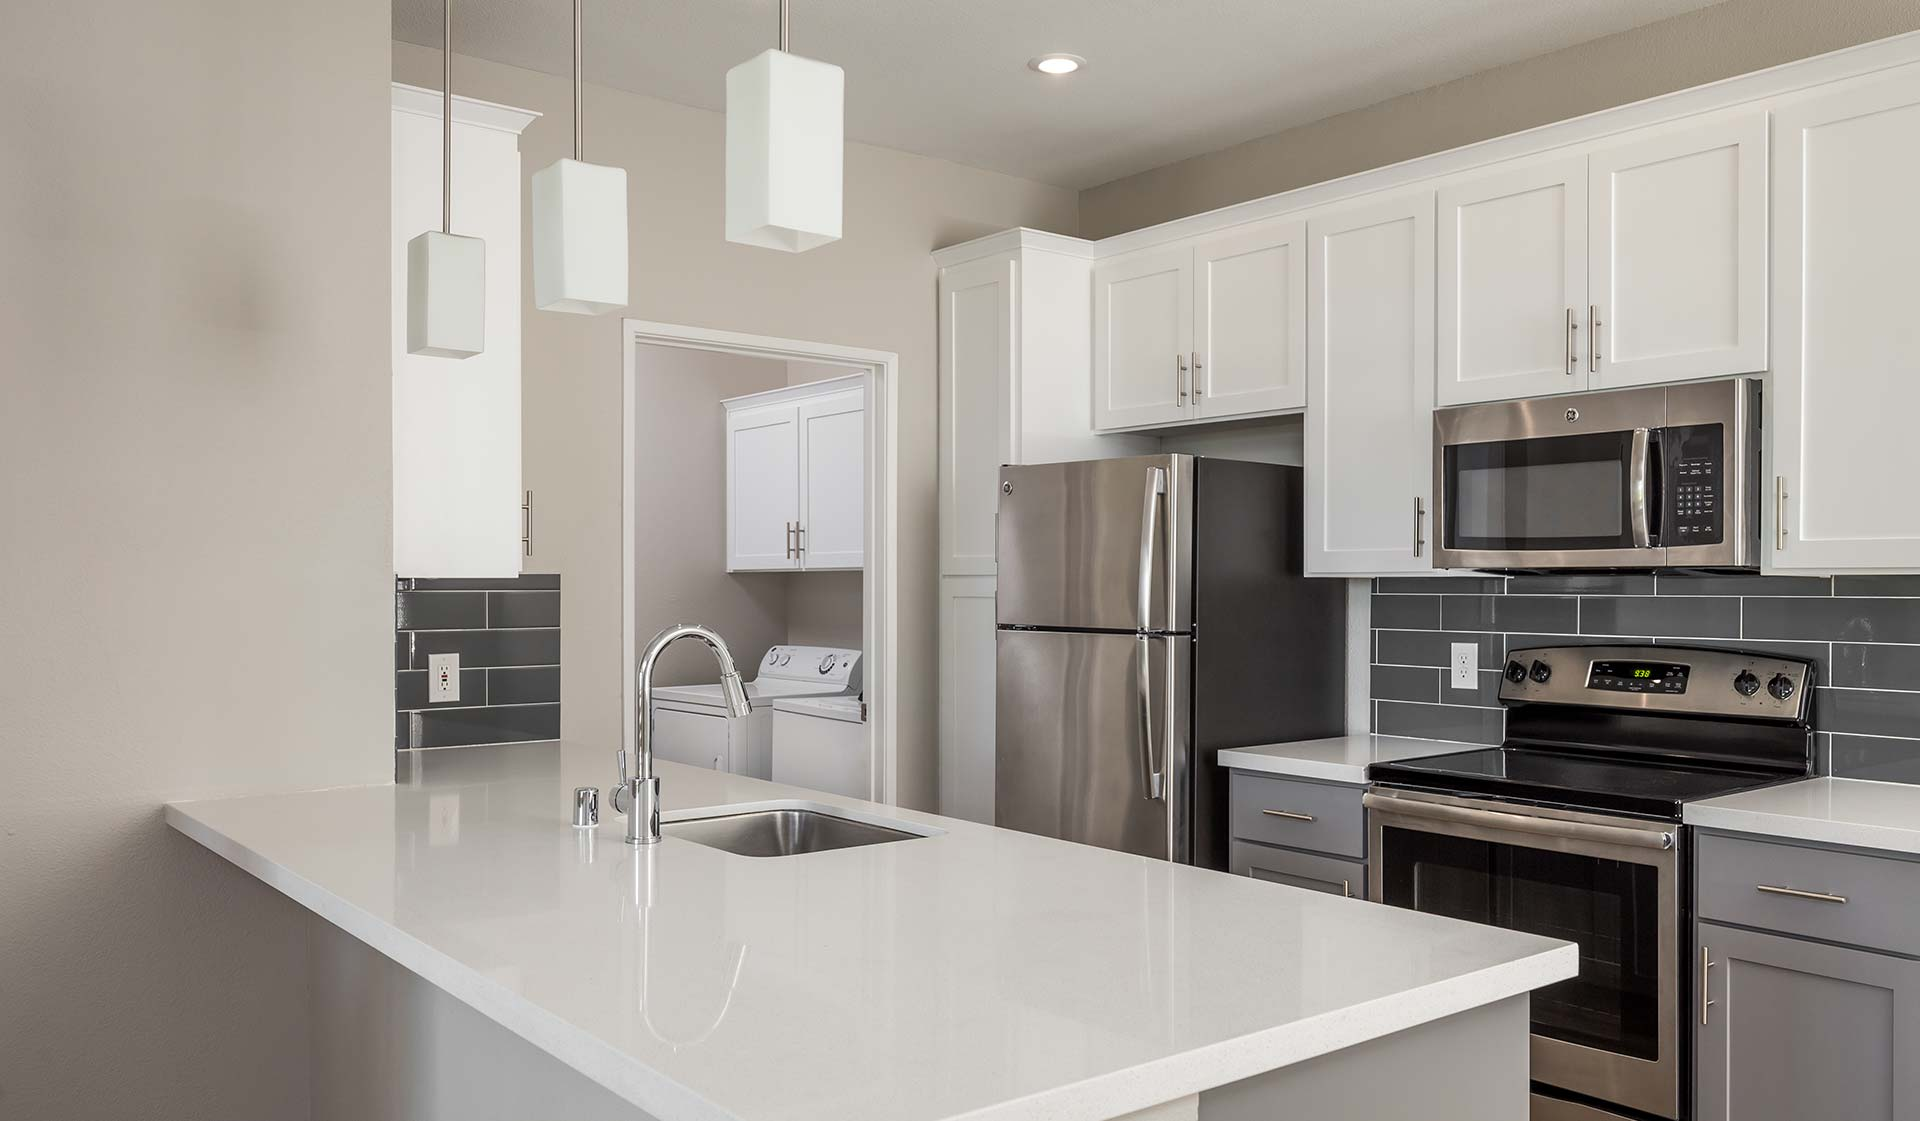 Luxury Apartments for rent in San Jose, CA - Modern Kitchen